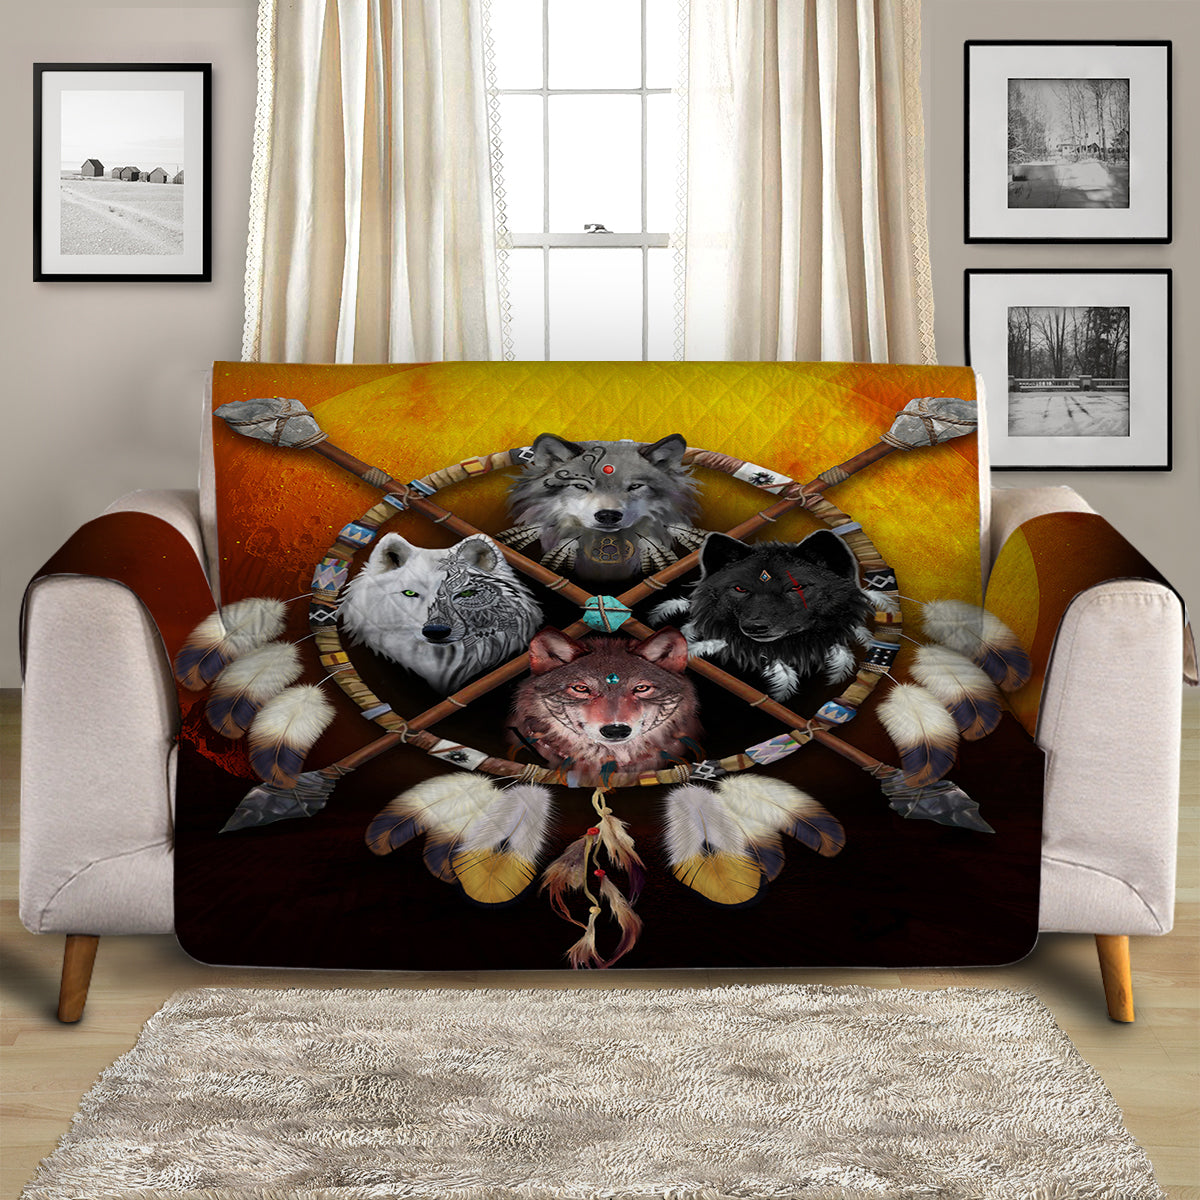 4 Wolves Warrior Dark Quilted Quilted Cover for Sofa, Chairs, Futons & Recliners